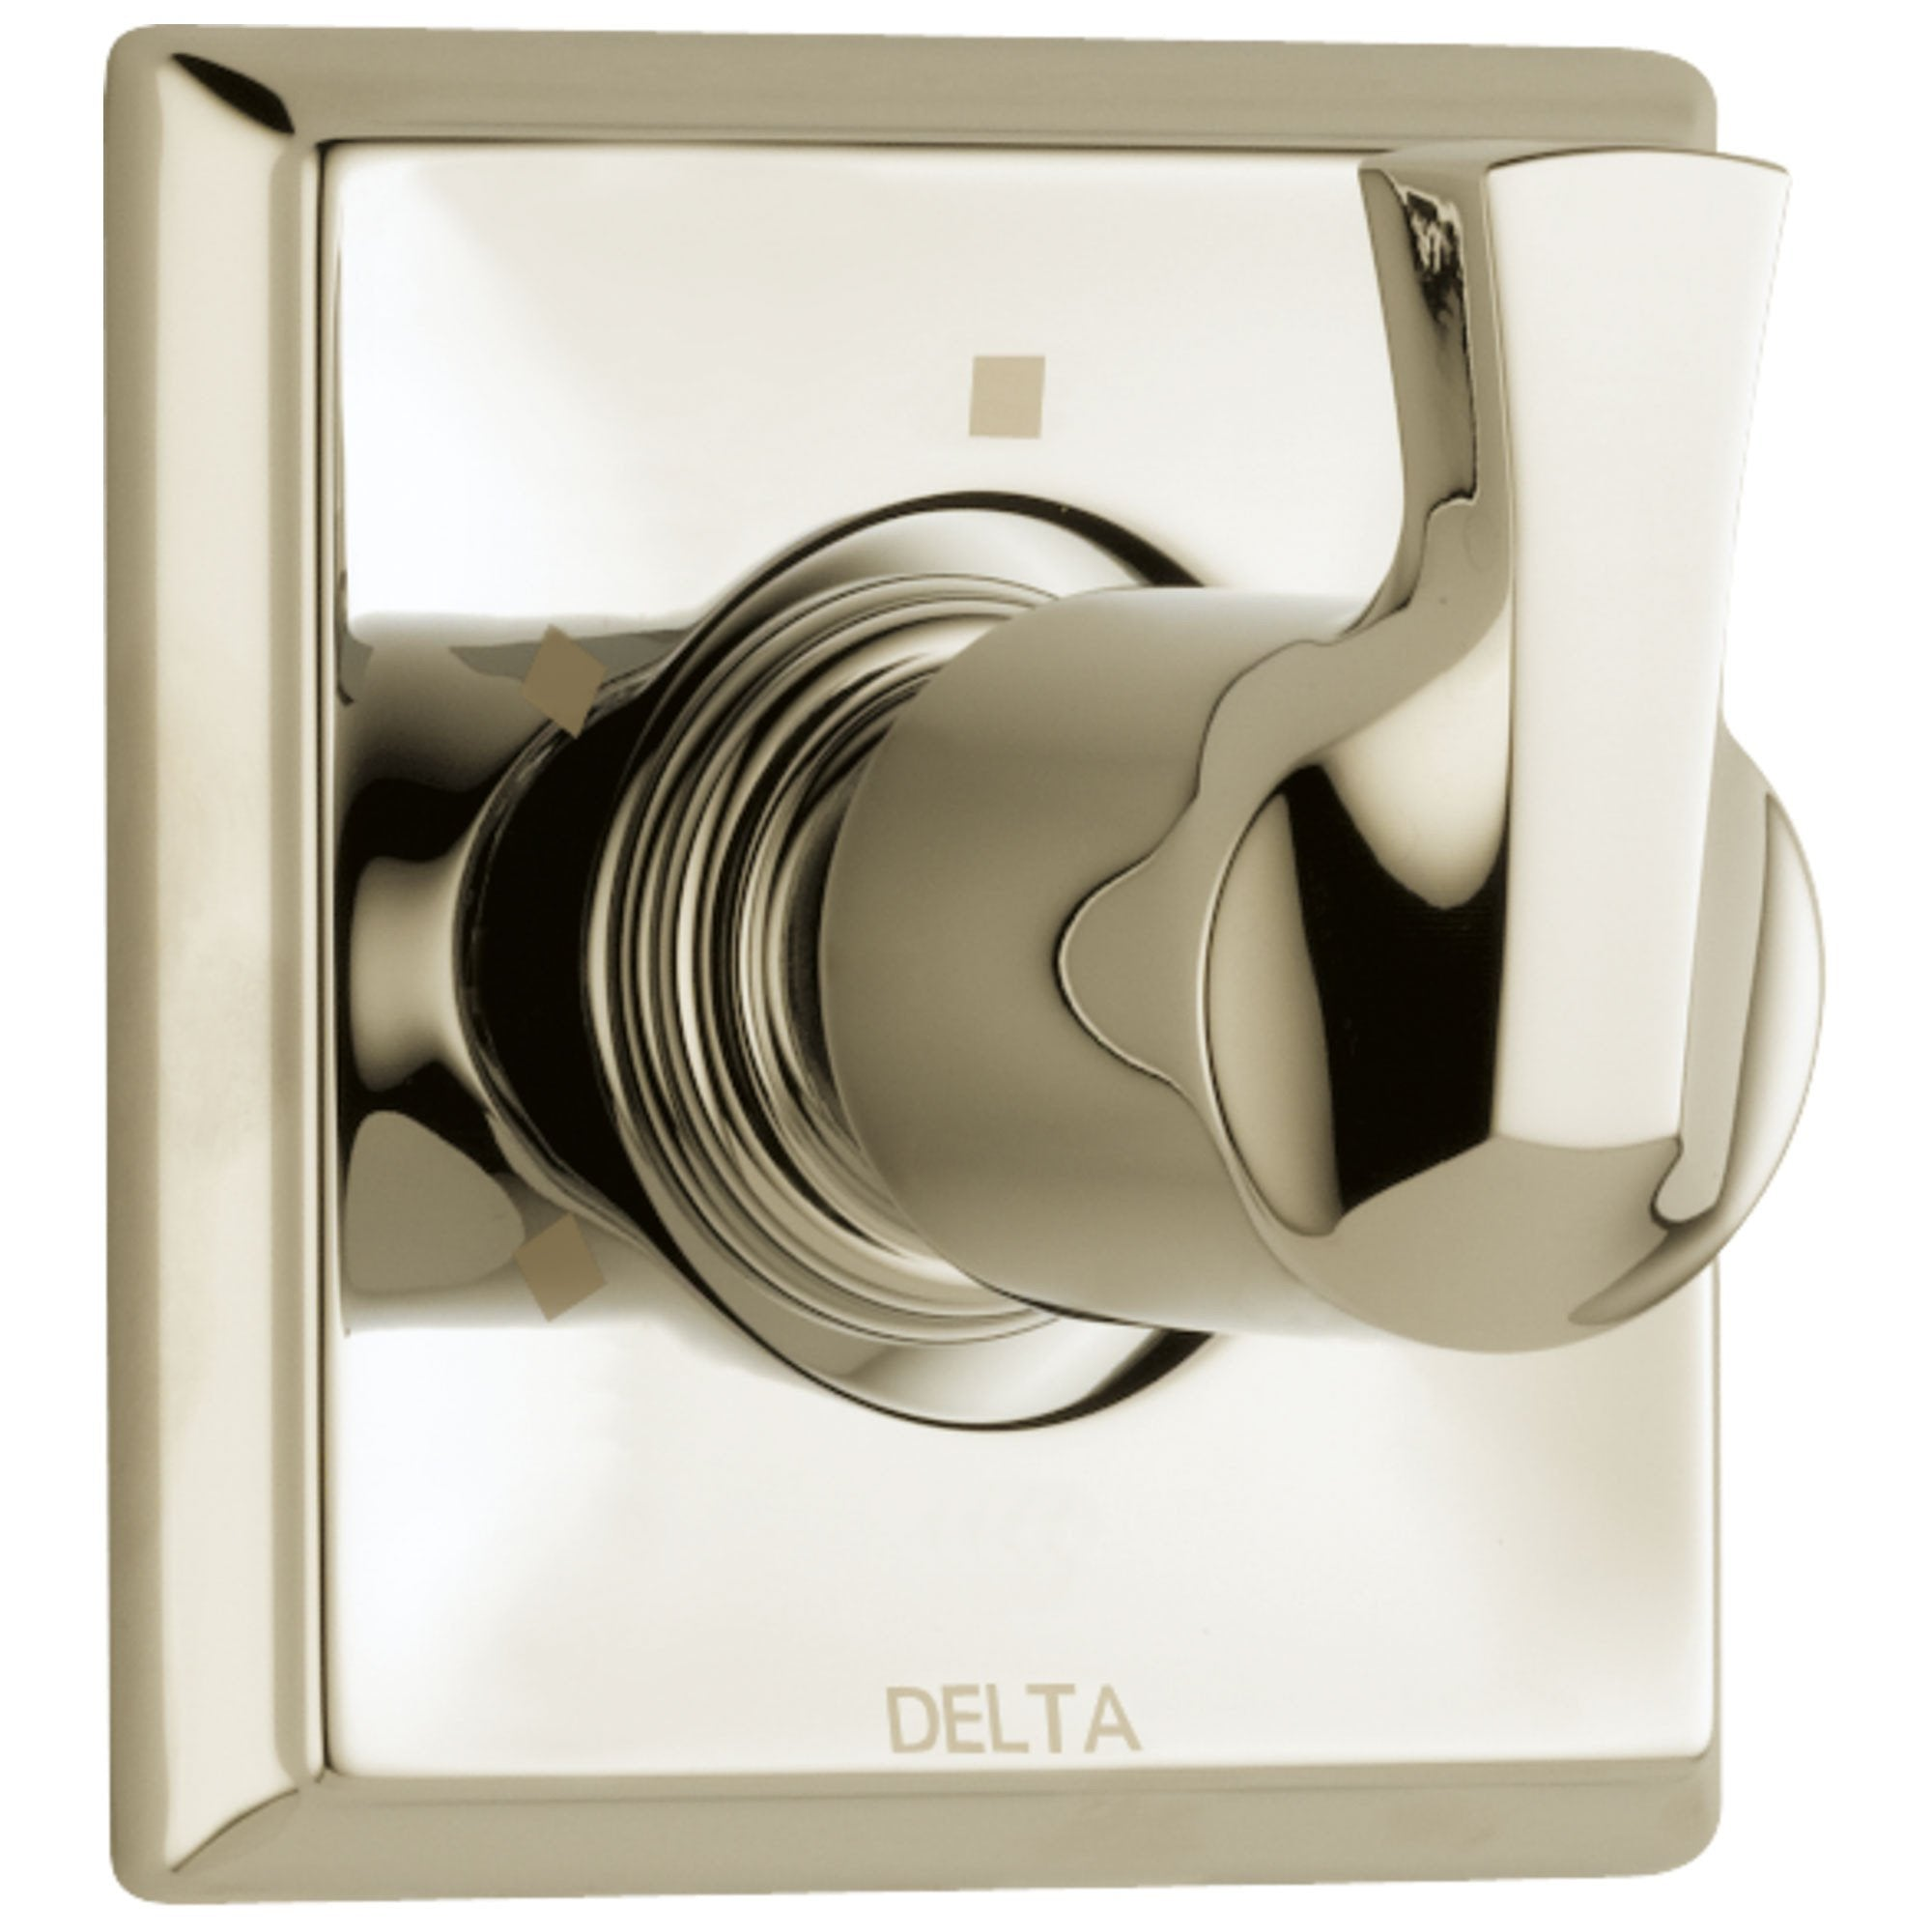 Delta Dryden Collection Polished Nickel 3-Setting 2-Port Contemporary Single Handle Shower System Diverter Trim Kit (Valve Sold Separately) DT11851PN